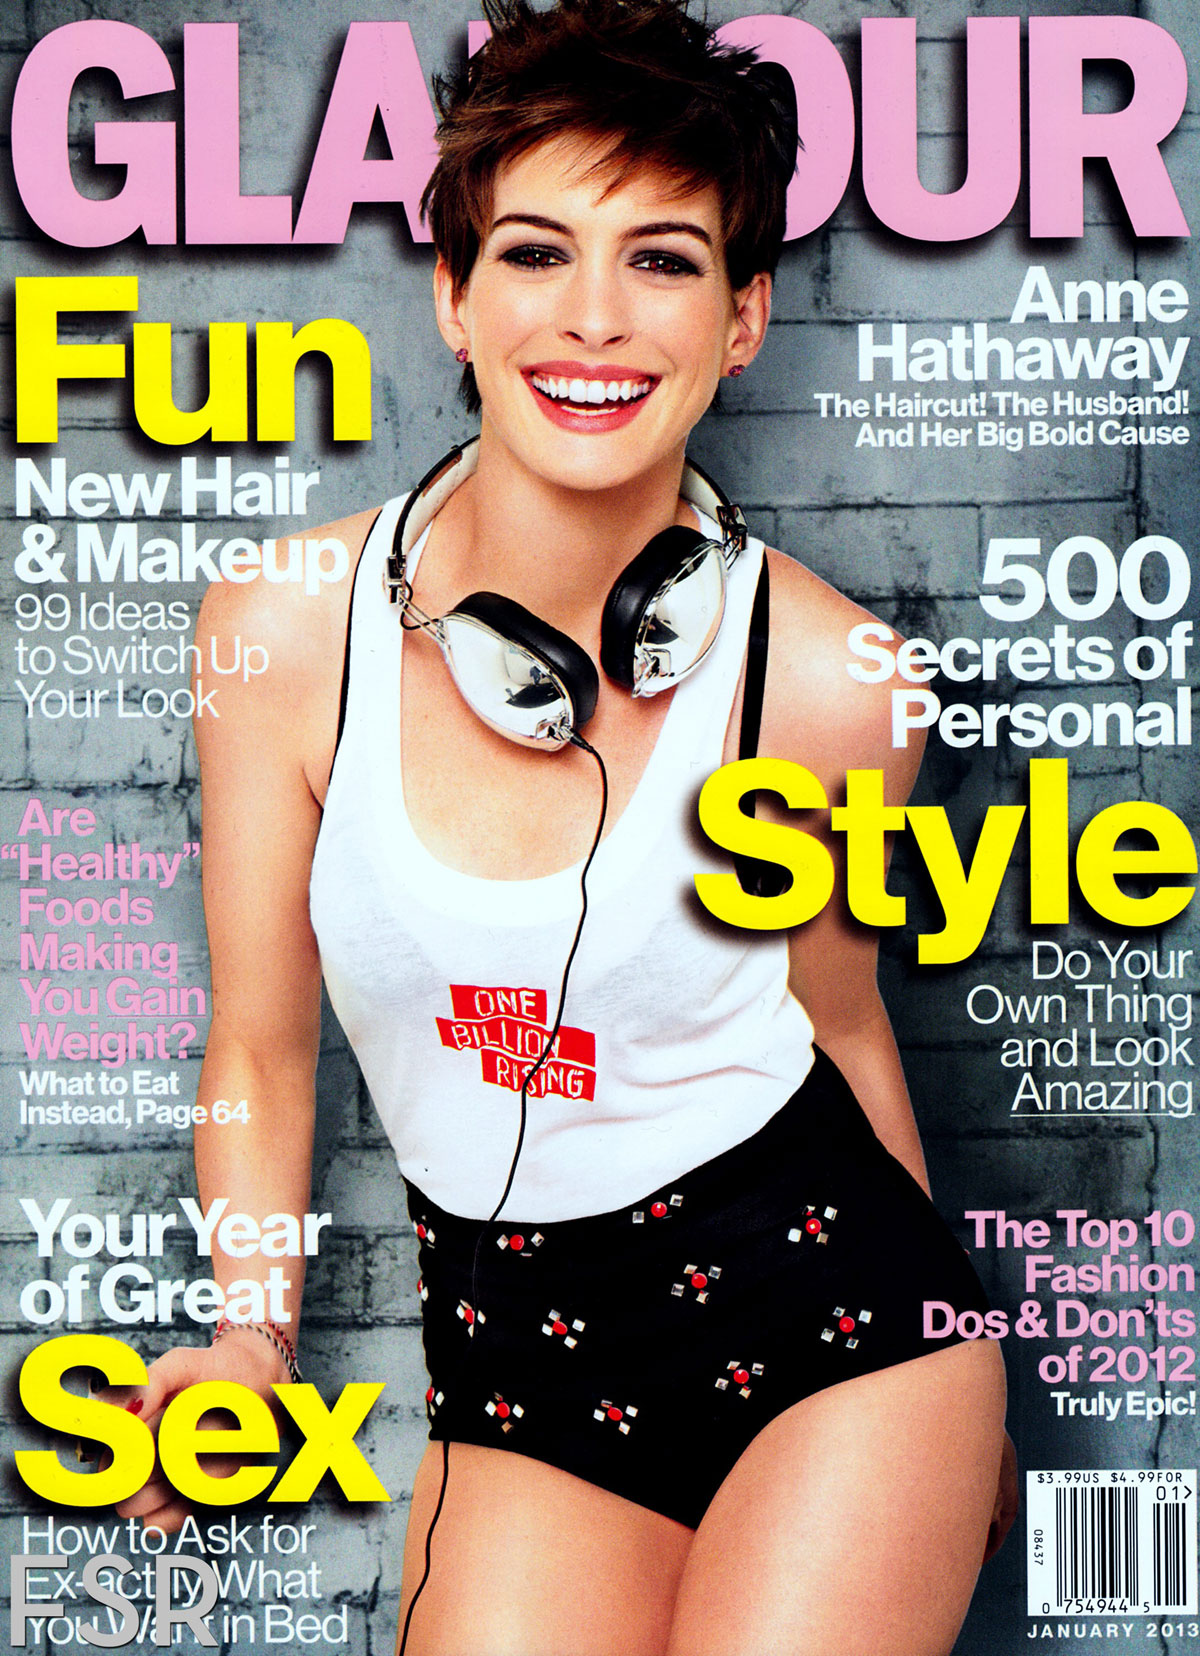 ANNE HATHAWAY In Glamour Magazine, January 2013 Issue